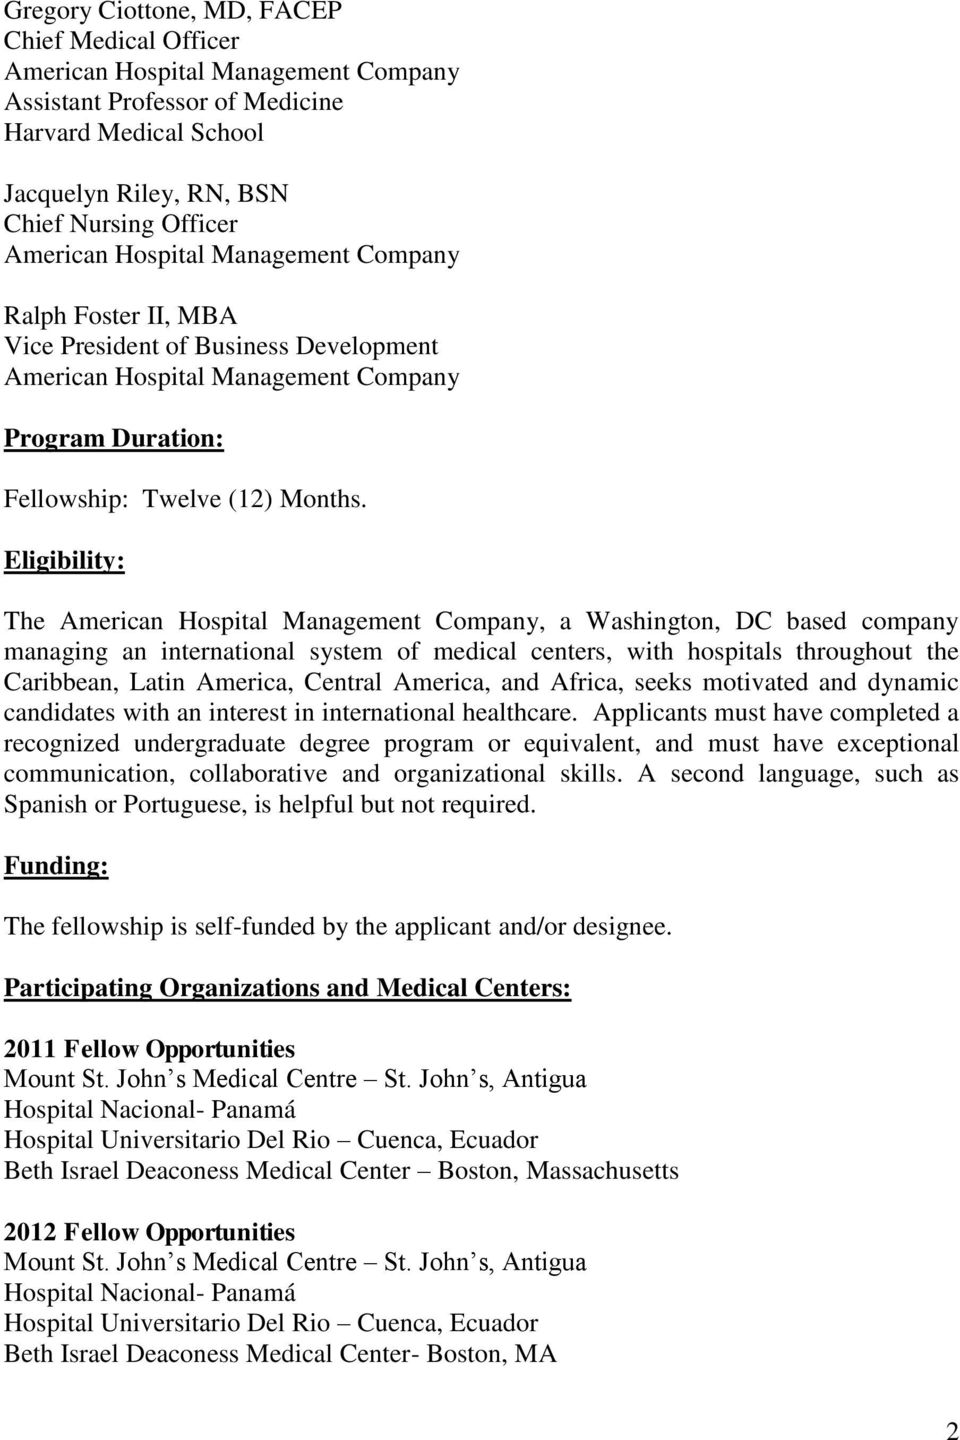 Eligibility: The, a Washington, DC based company managing an international system of medical centers, with hospitals throughout the Caribbean, Latin America, Central America, and Africa, seeks